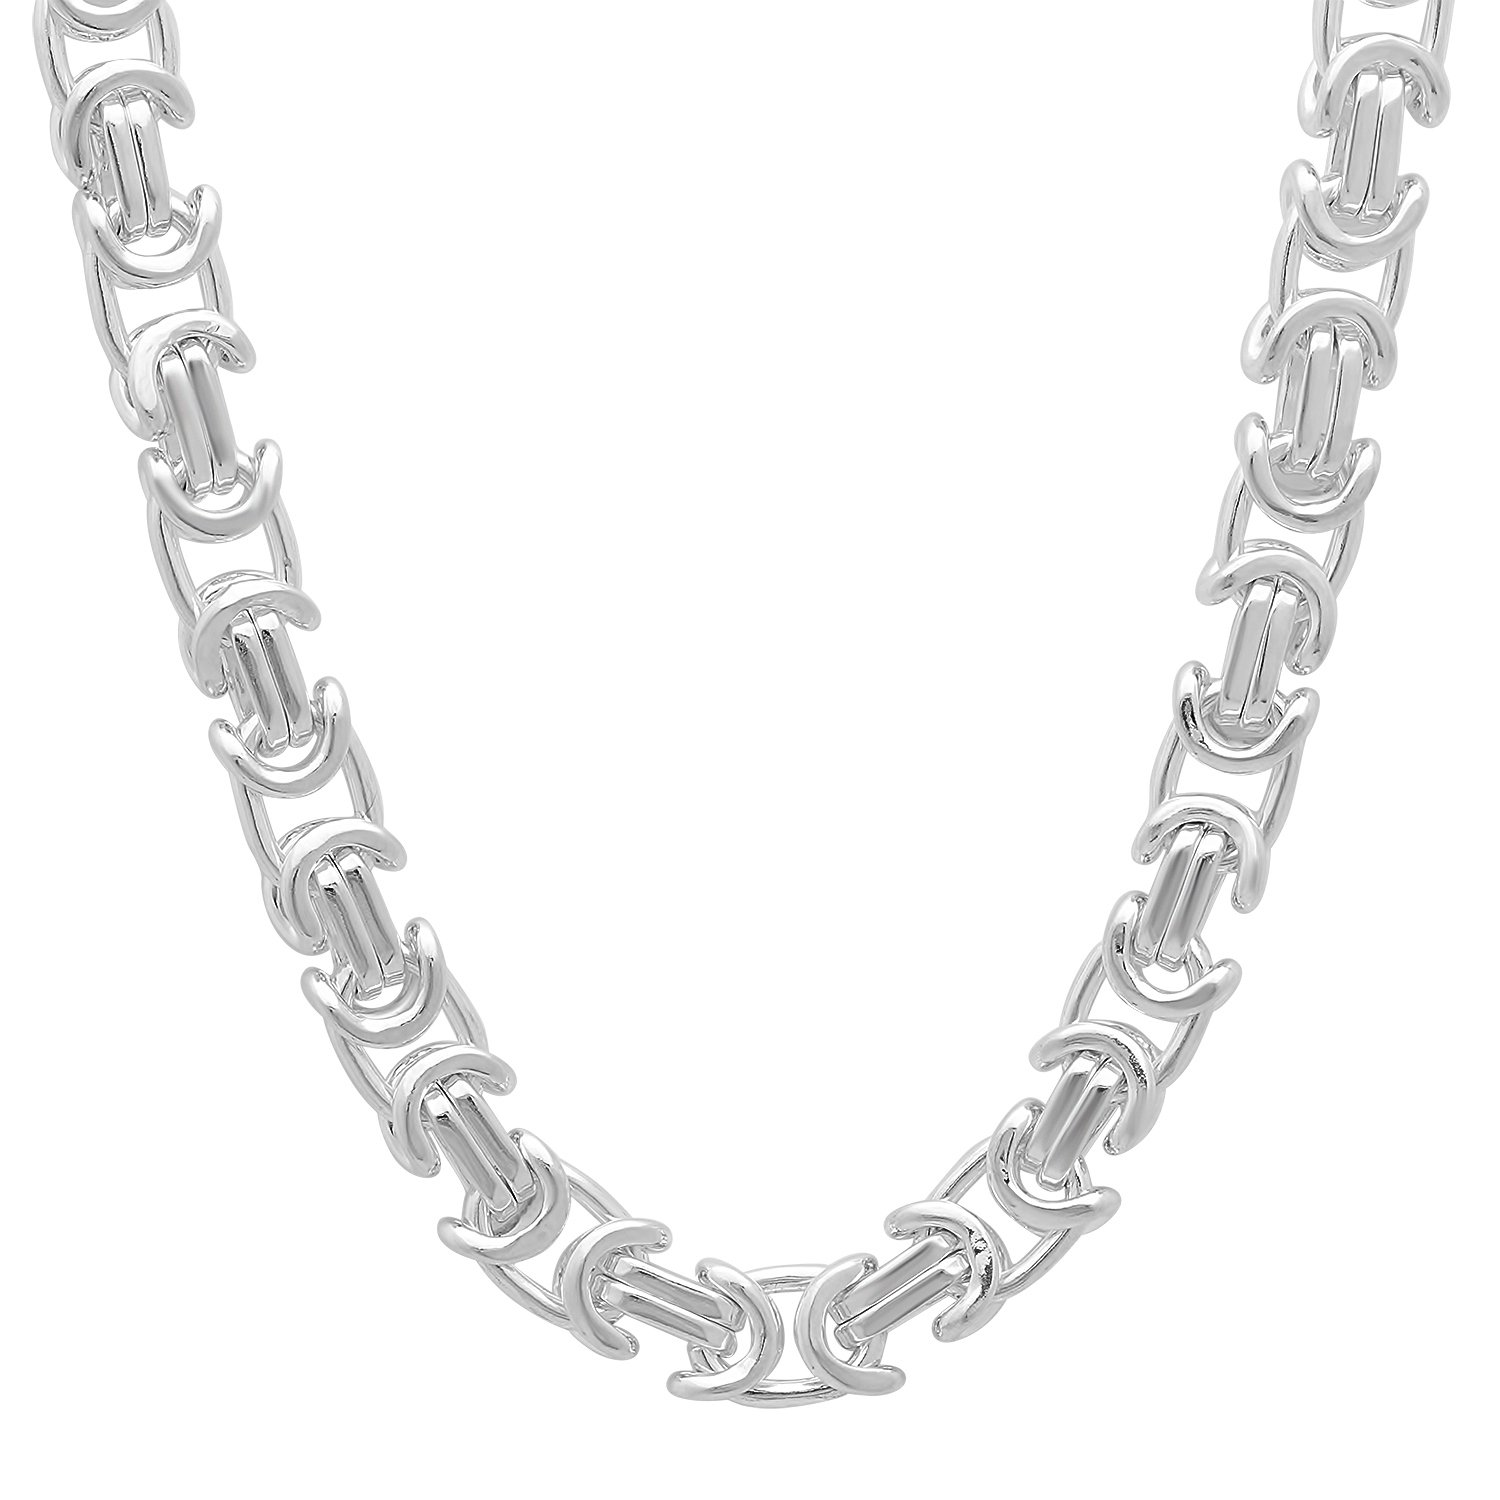 6.1mm 925 Sterling Silver Nickel-Free Byzantine Link Chain, 18'' - Made in Italy + Cleaning Cloth